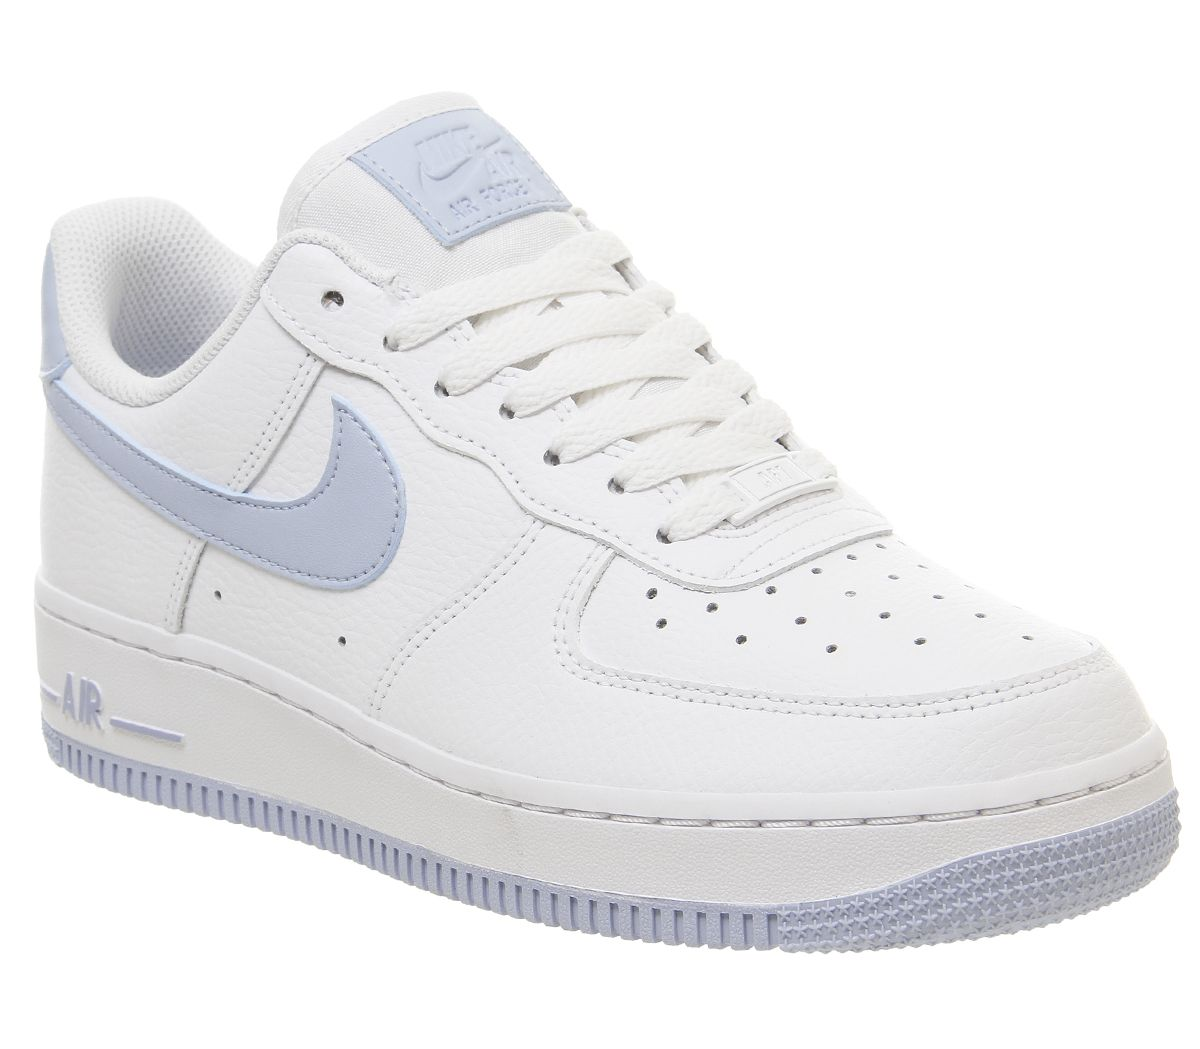 514e8f8b8 Nike Air Force 1 07 Trainers White Light Armory Blue - Hers trainers